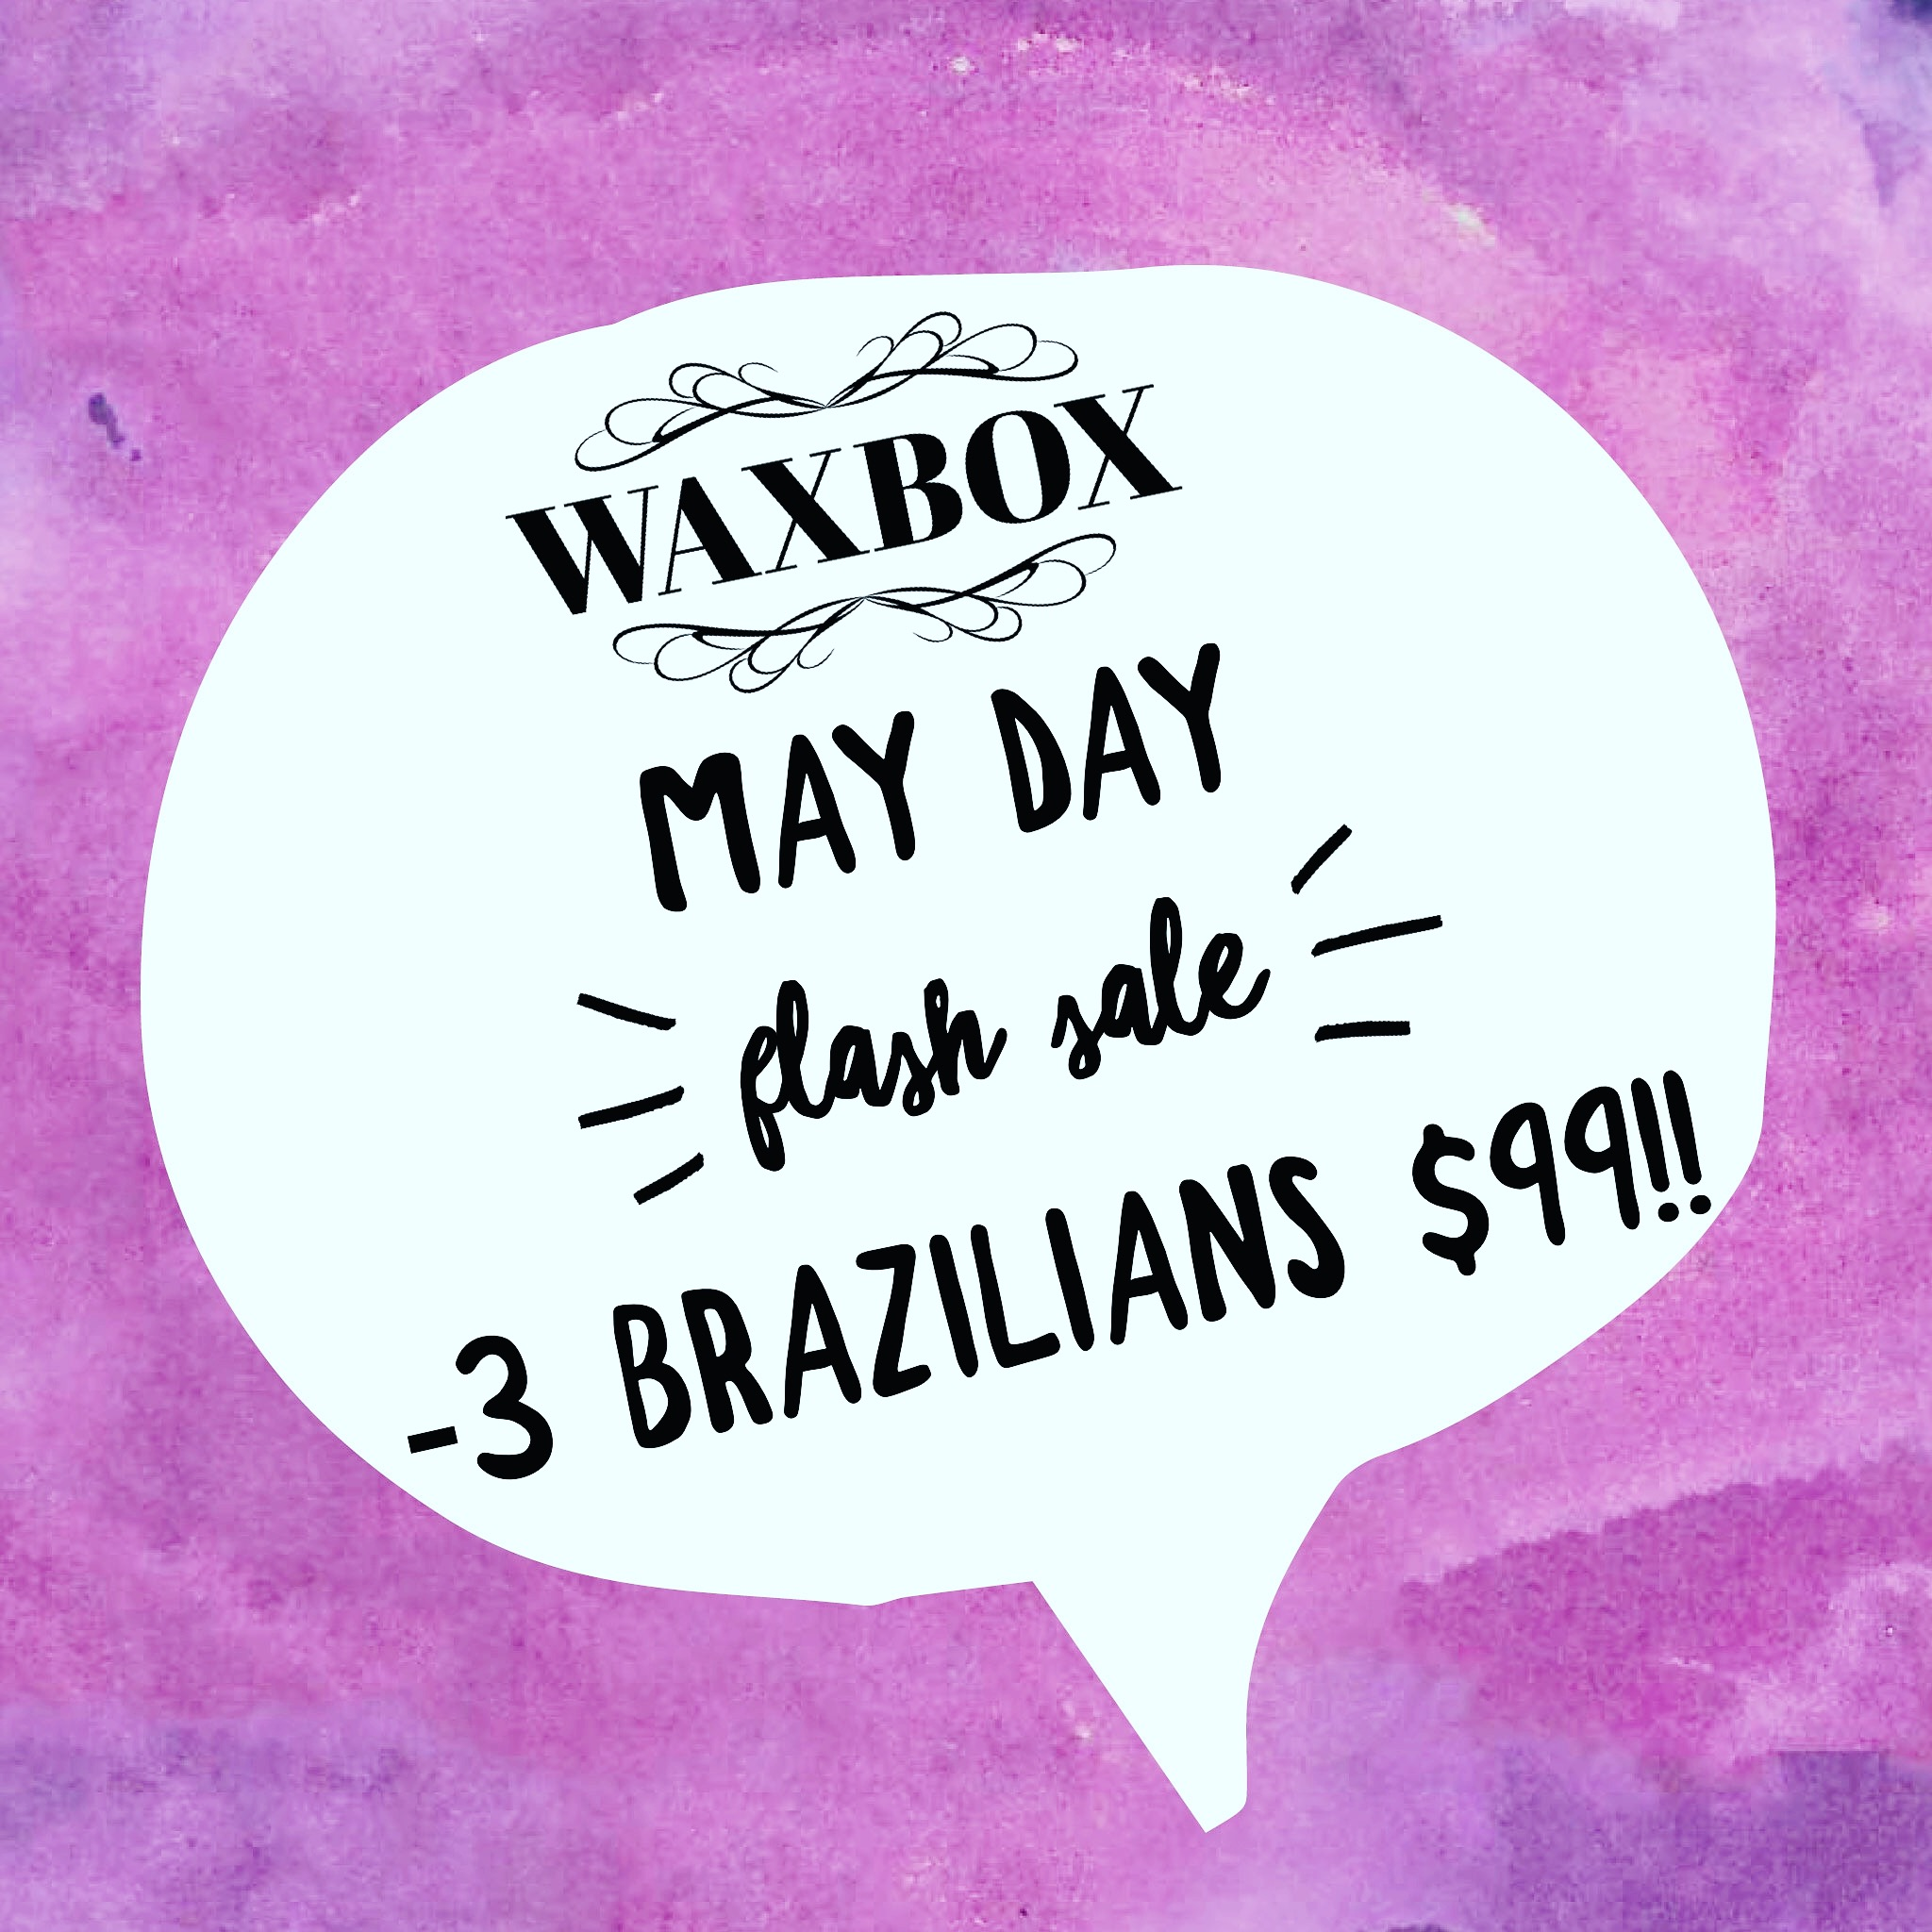 Today & Tomorrow only!! MAY DAY FLASH SALE!! 3 Brazilians $99!!!